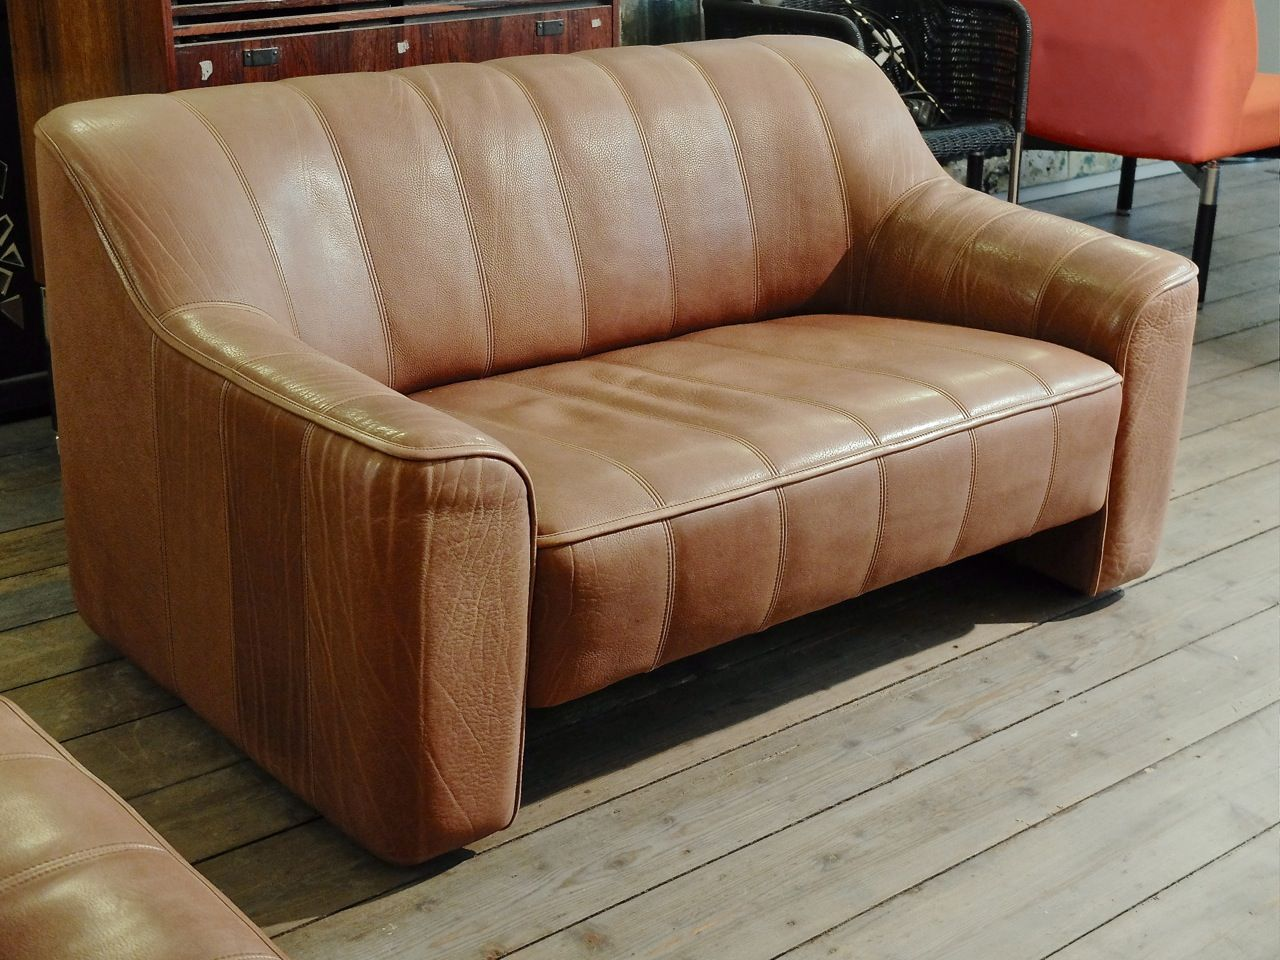 vintage swiss ds 44 2 seater sofa from de sede for sale at pamono. Black Bedroom Furniture Sets. Home Design Ideas